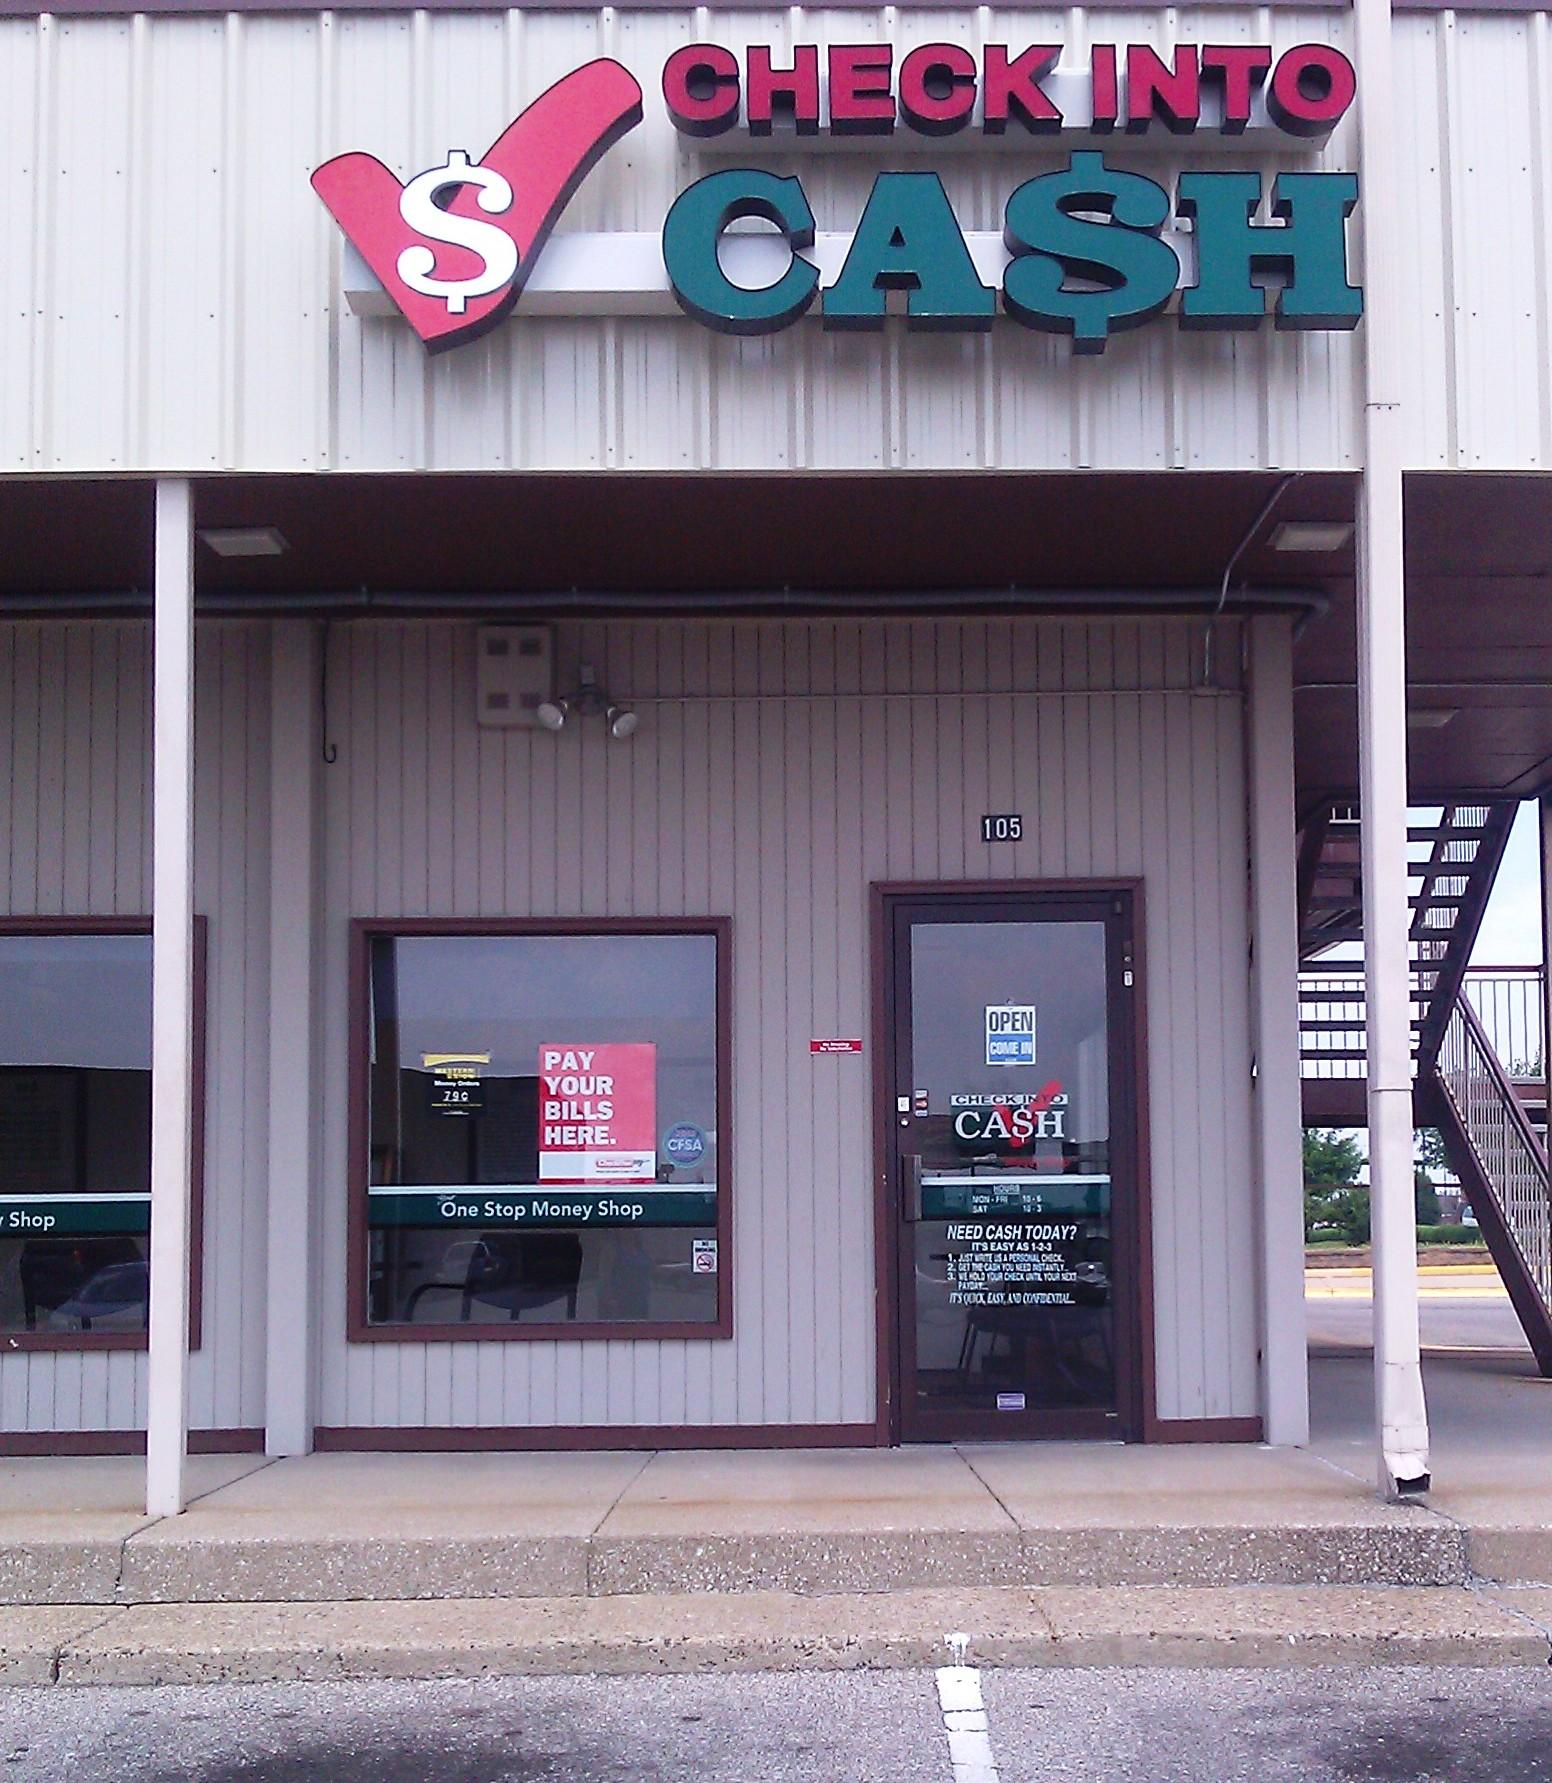 500 fast cash payday loan photo 10